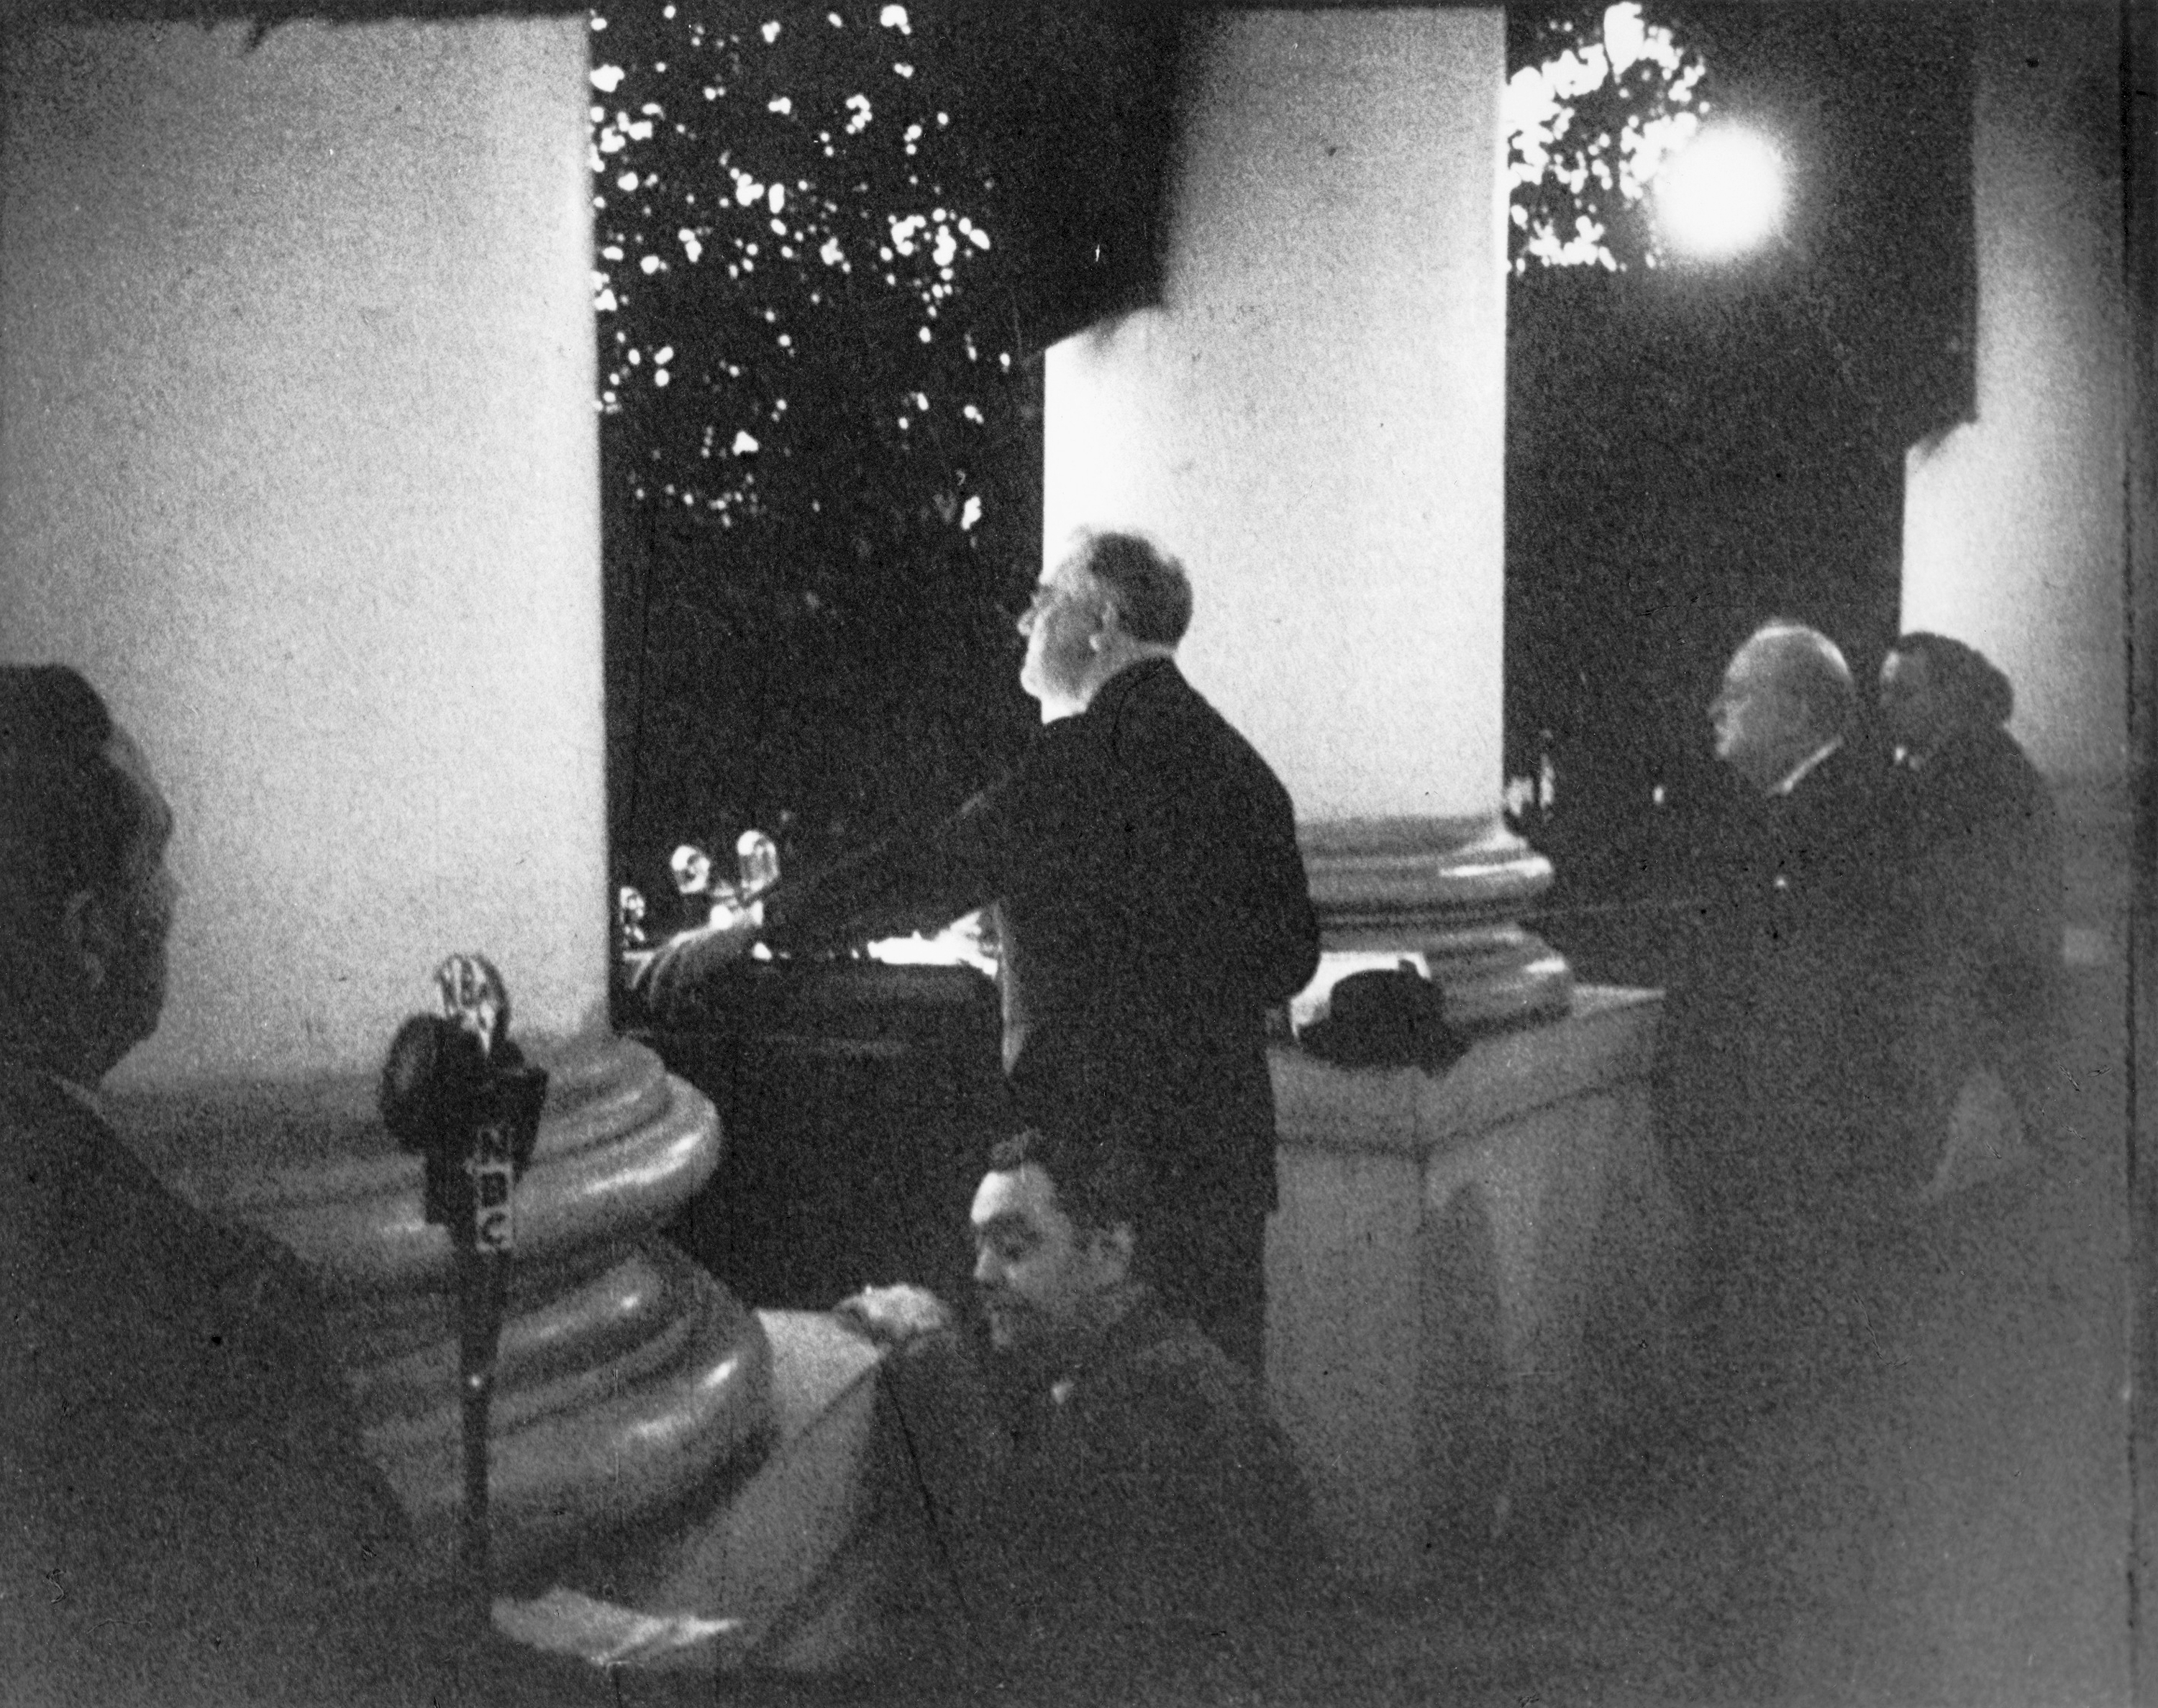 President Franklin D. Roosevelt speaks before lighting the 1941 National Christmas Tree. British Prime Minister Winston Churchill (right) was a surprise guest.